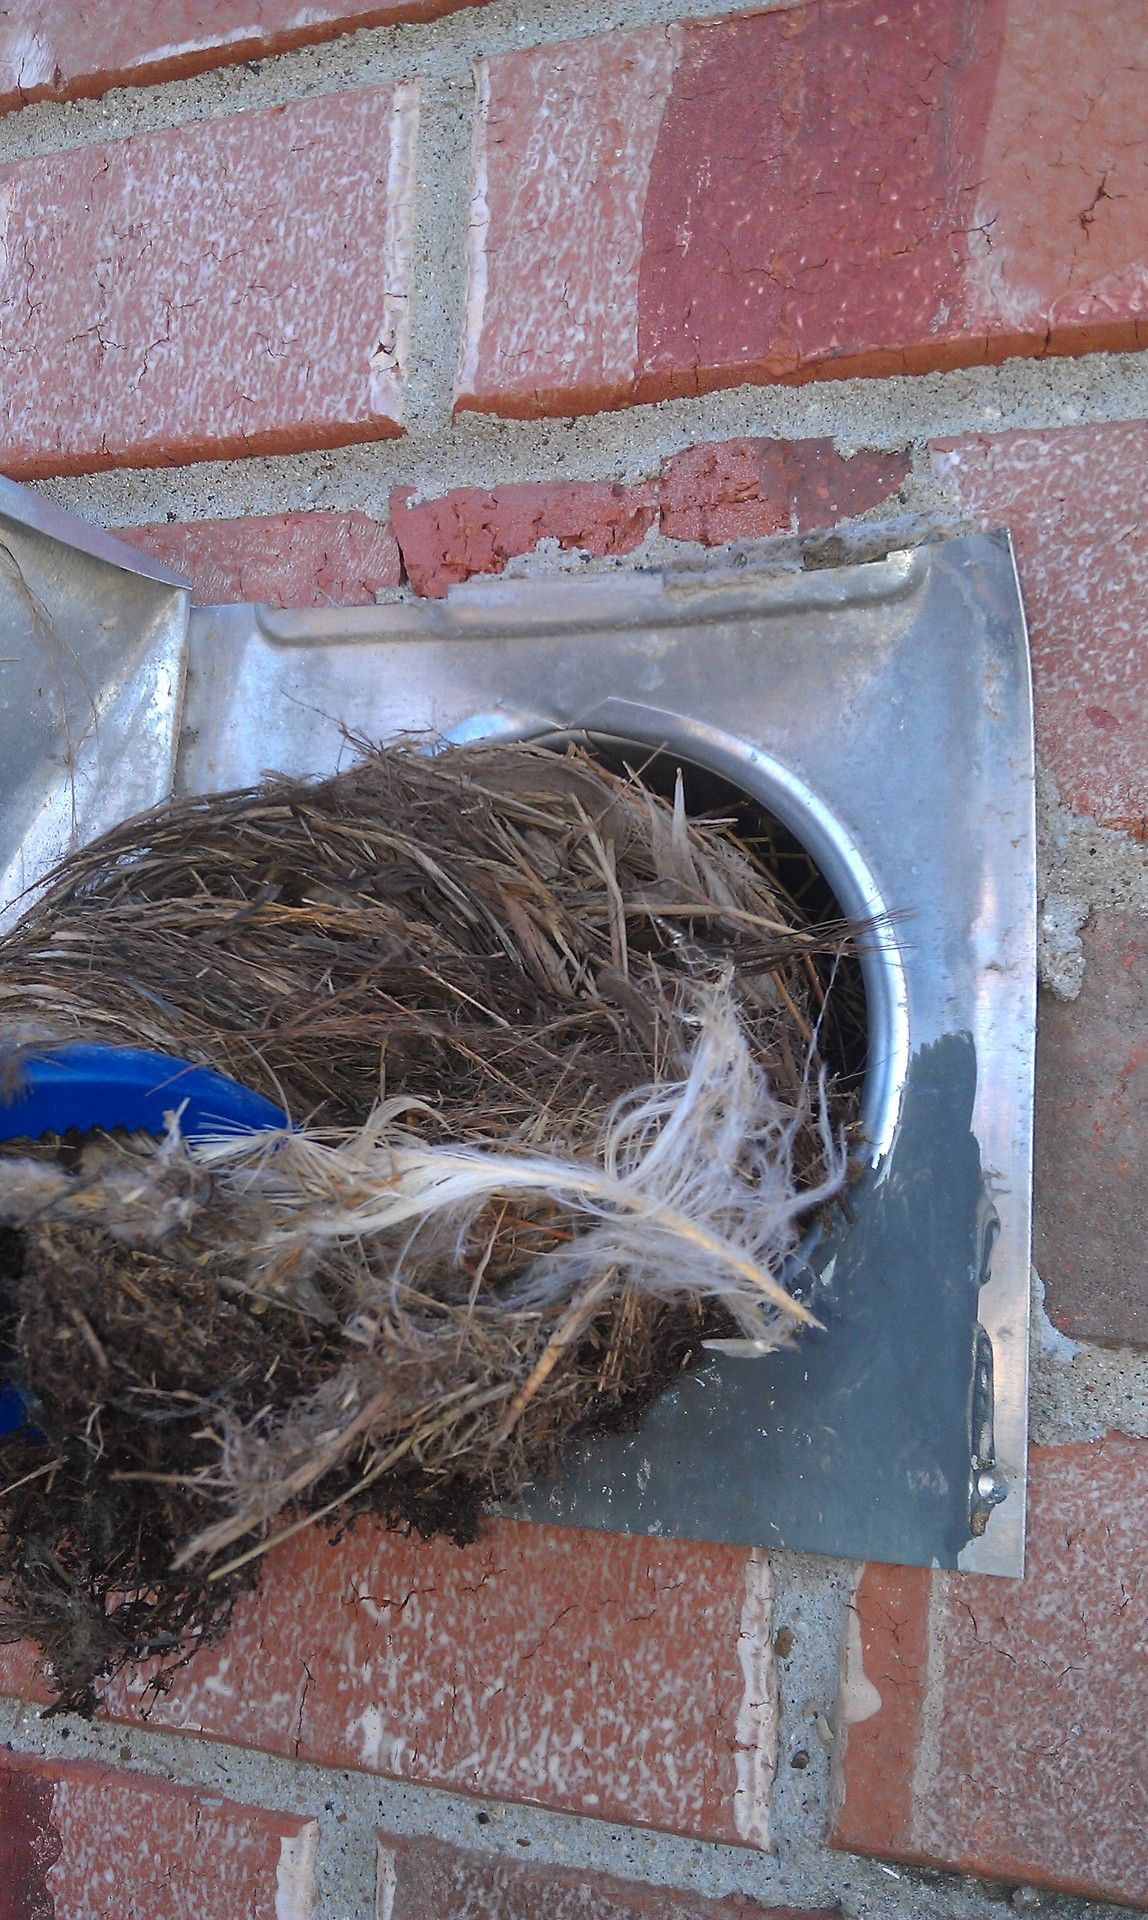 Exceptional Birds Build Nests Inside Dryer Vents And Cause Major Problems With Your  Dryer And Are A Fire Hazard. They Can Get Inside Most Covers Designed For Dryer  Vent ...